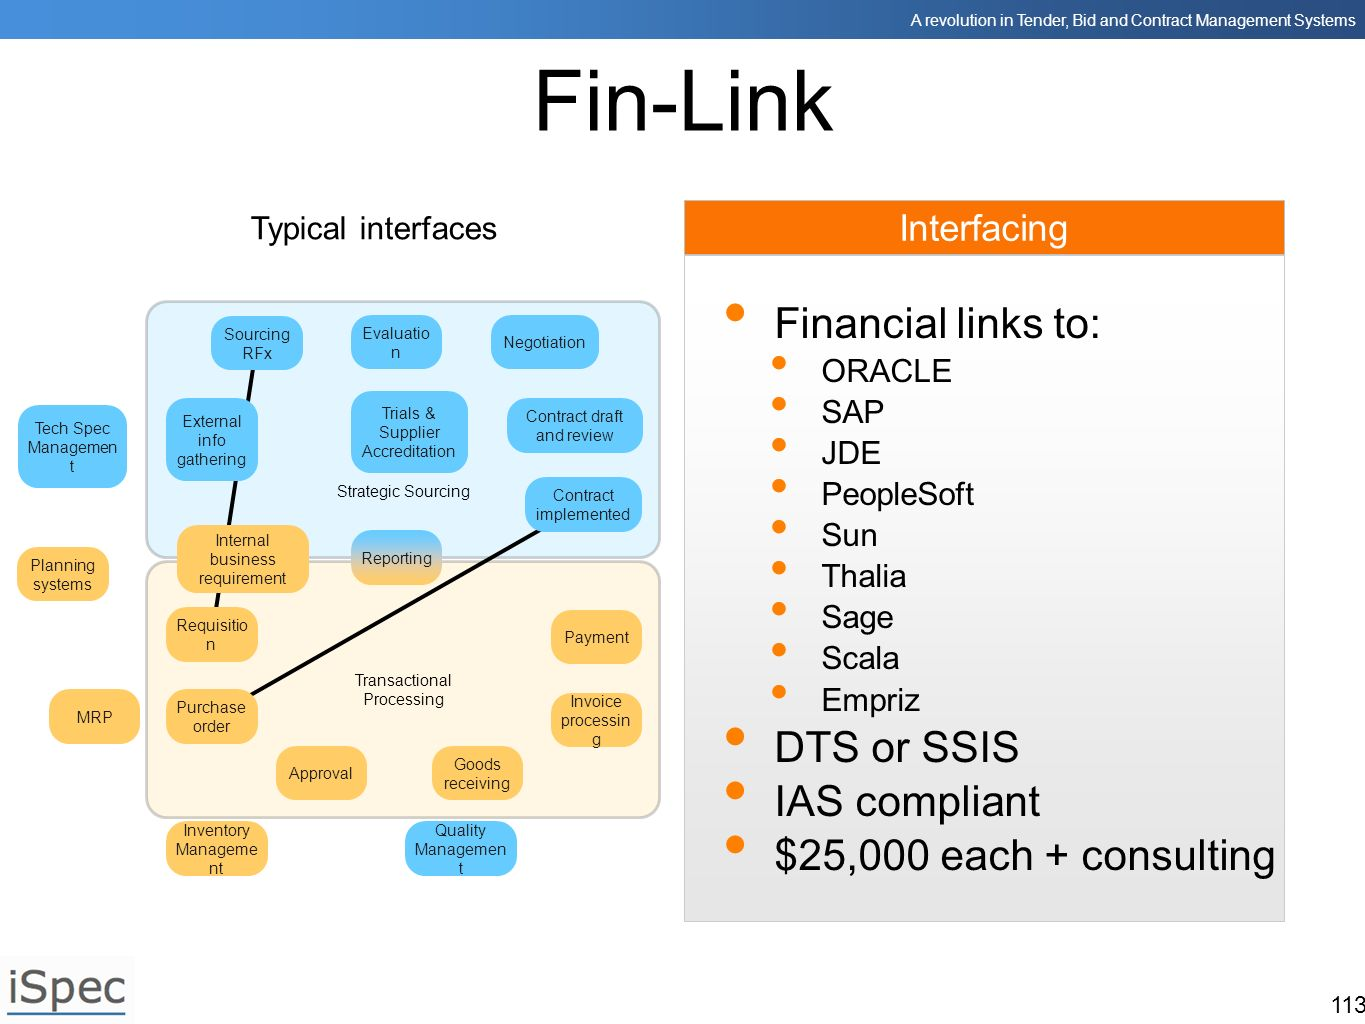 Fin-Link Financial links to: DTS or SSIS IAS compliant